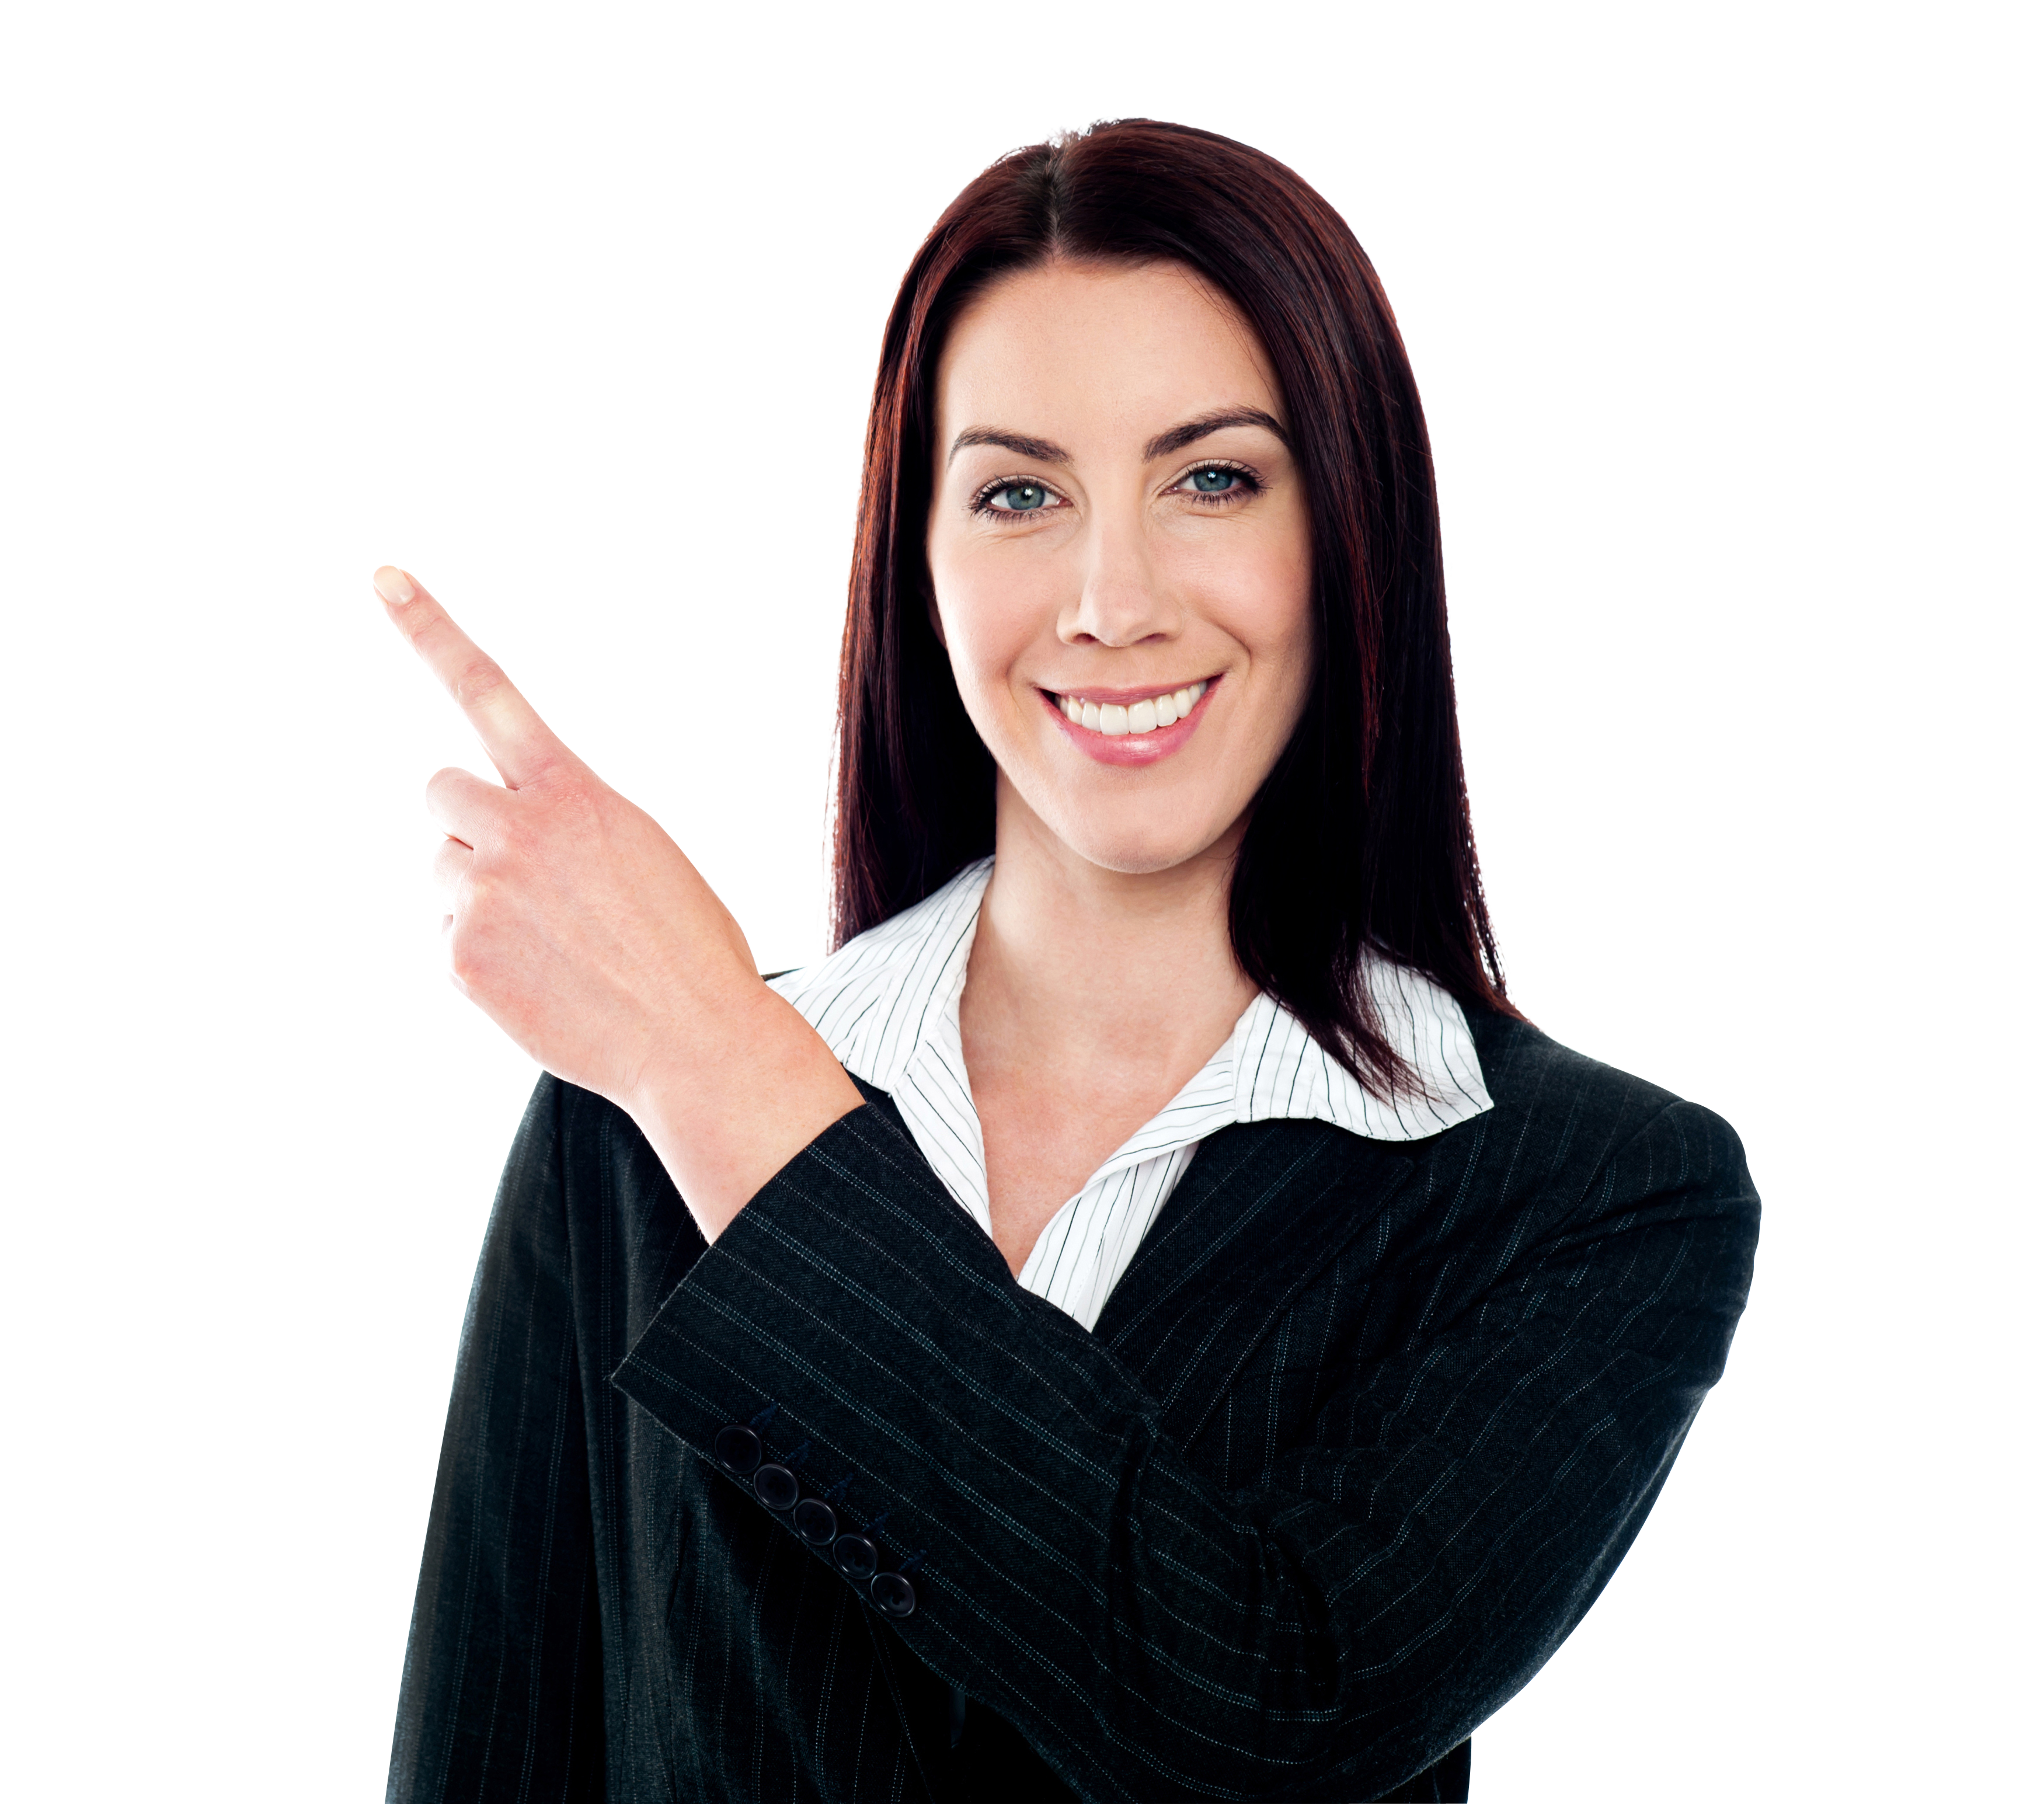 Woman pointing png. Women left image purepng